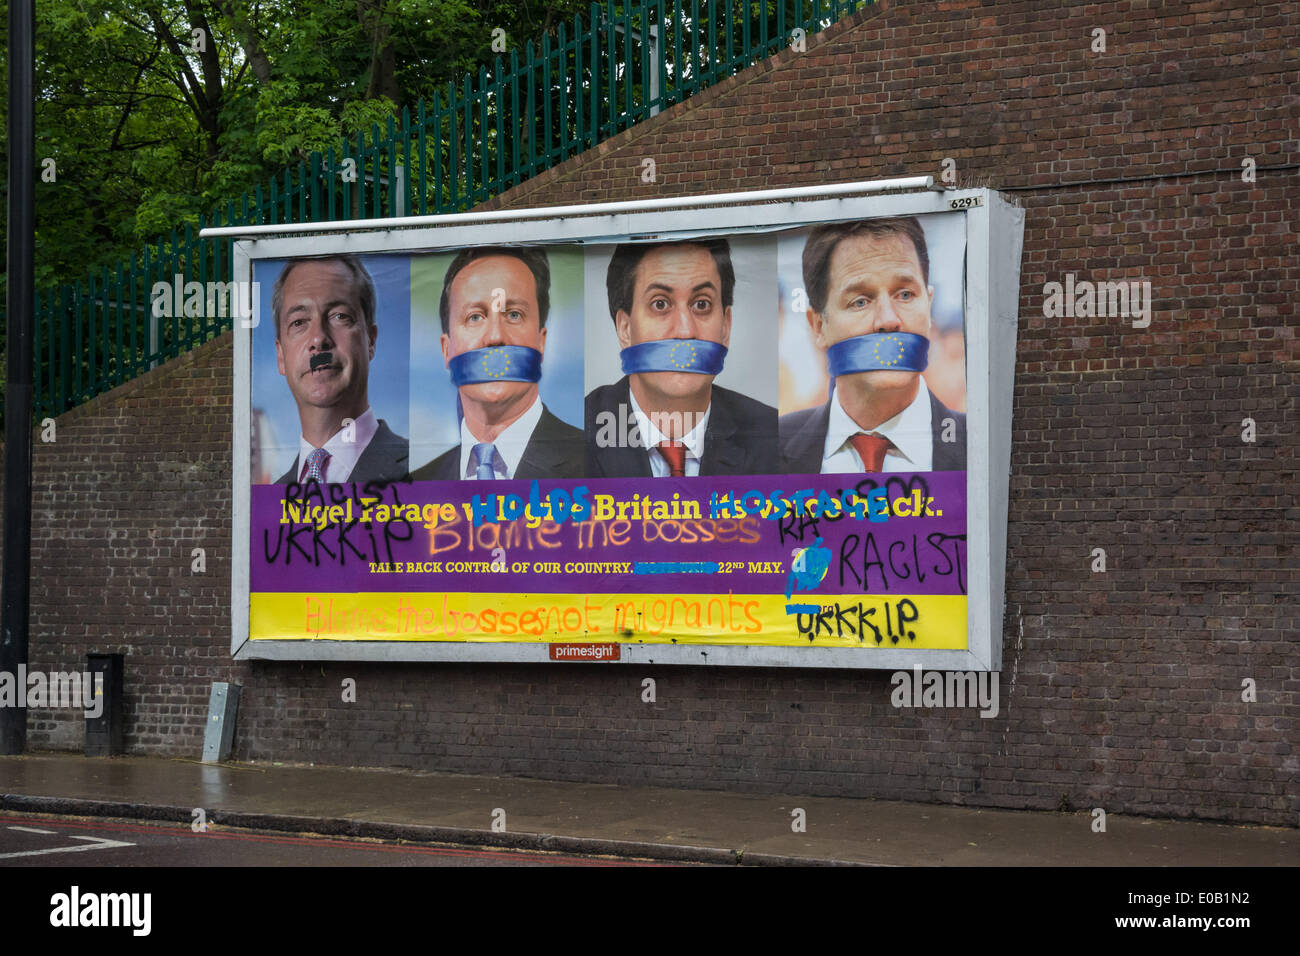 Tottenham, London UK. 8th May 2014. A billboard showing an advertisement for political party UKIP is defaced with the word 'Racist' in Tottenham, London. Tottenham is a London neighbourhood that is recognised for its racial diversity.  Credit:  Patricia Phillips/Alamy Live News - Stock Image